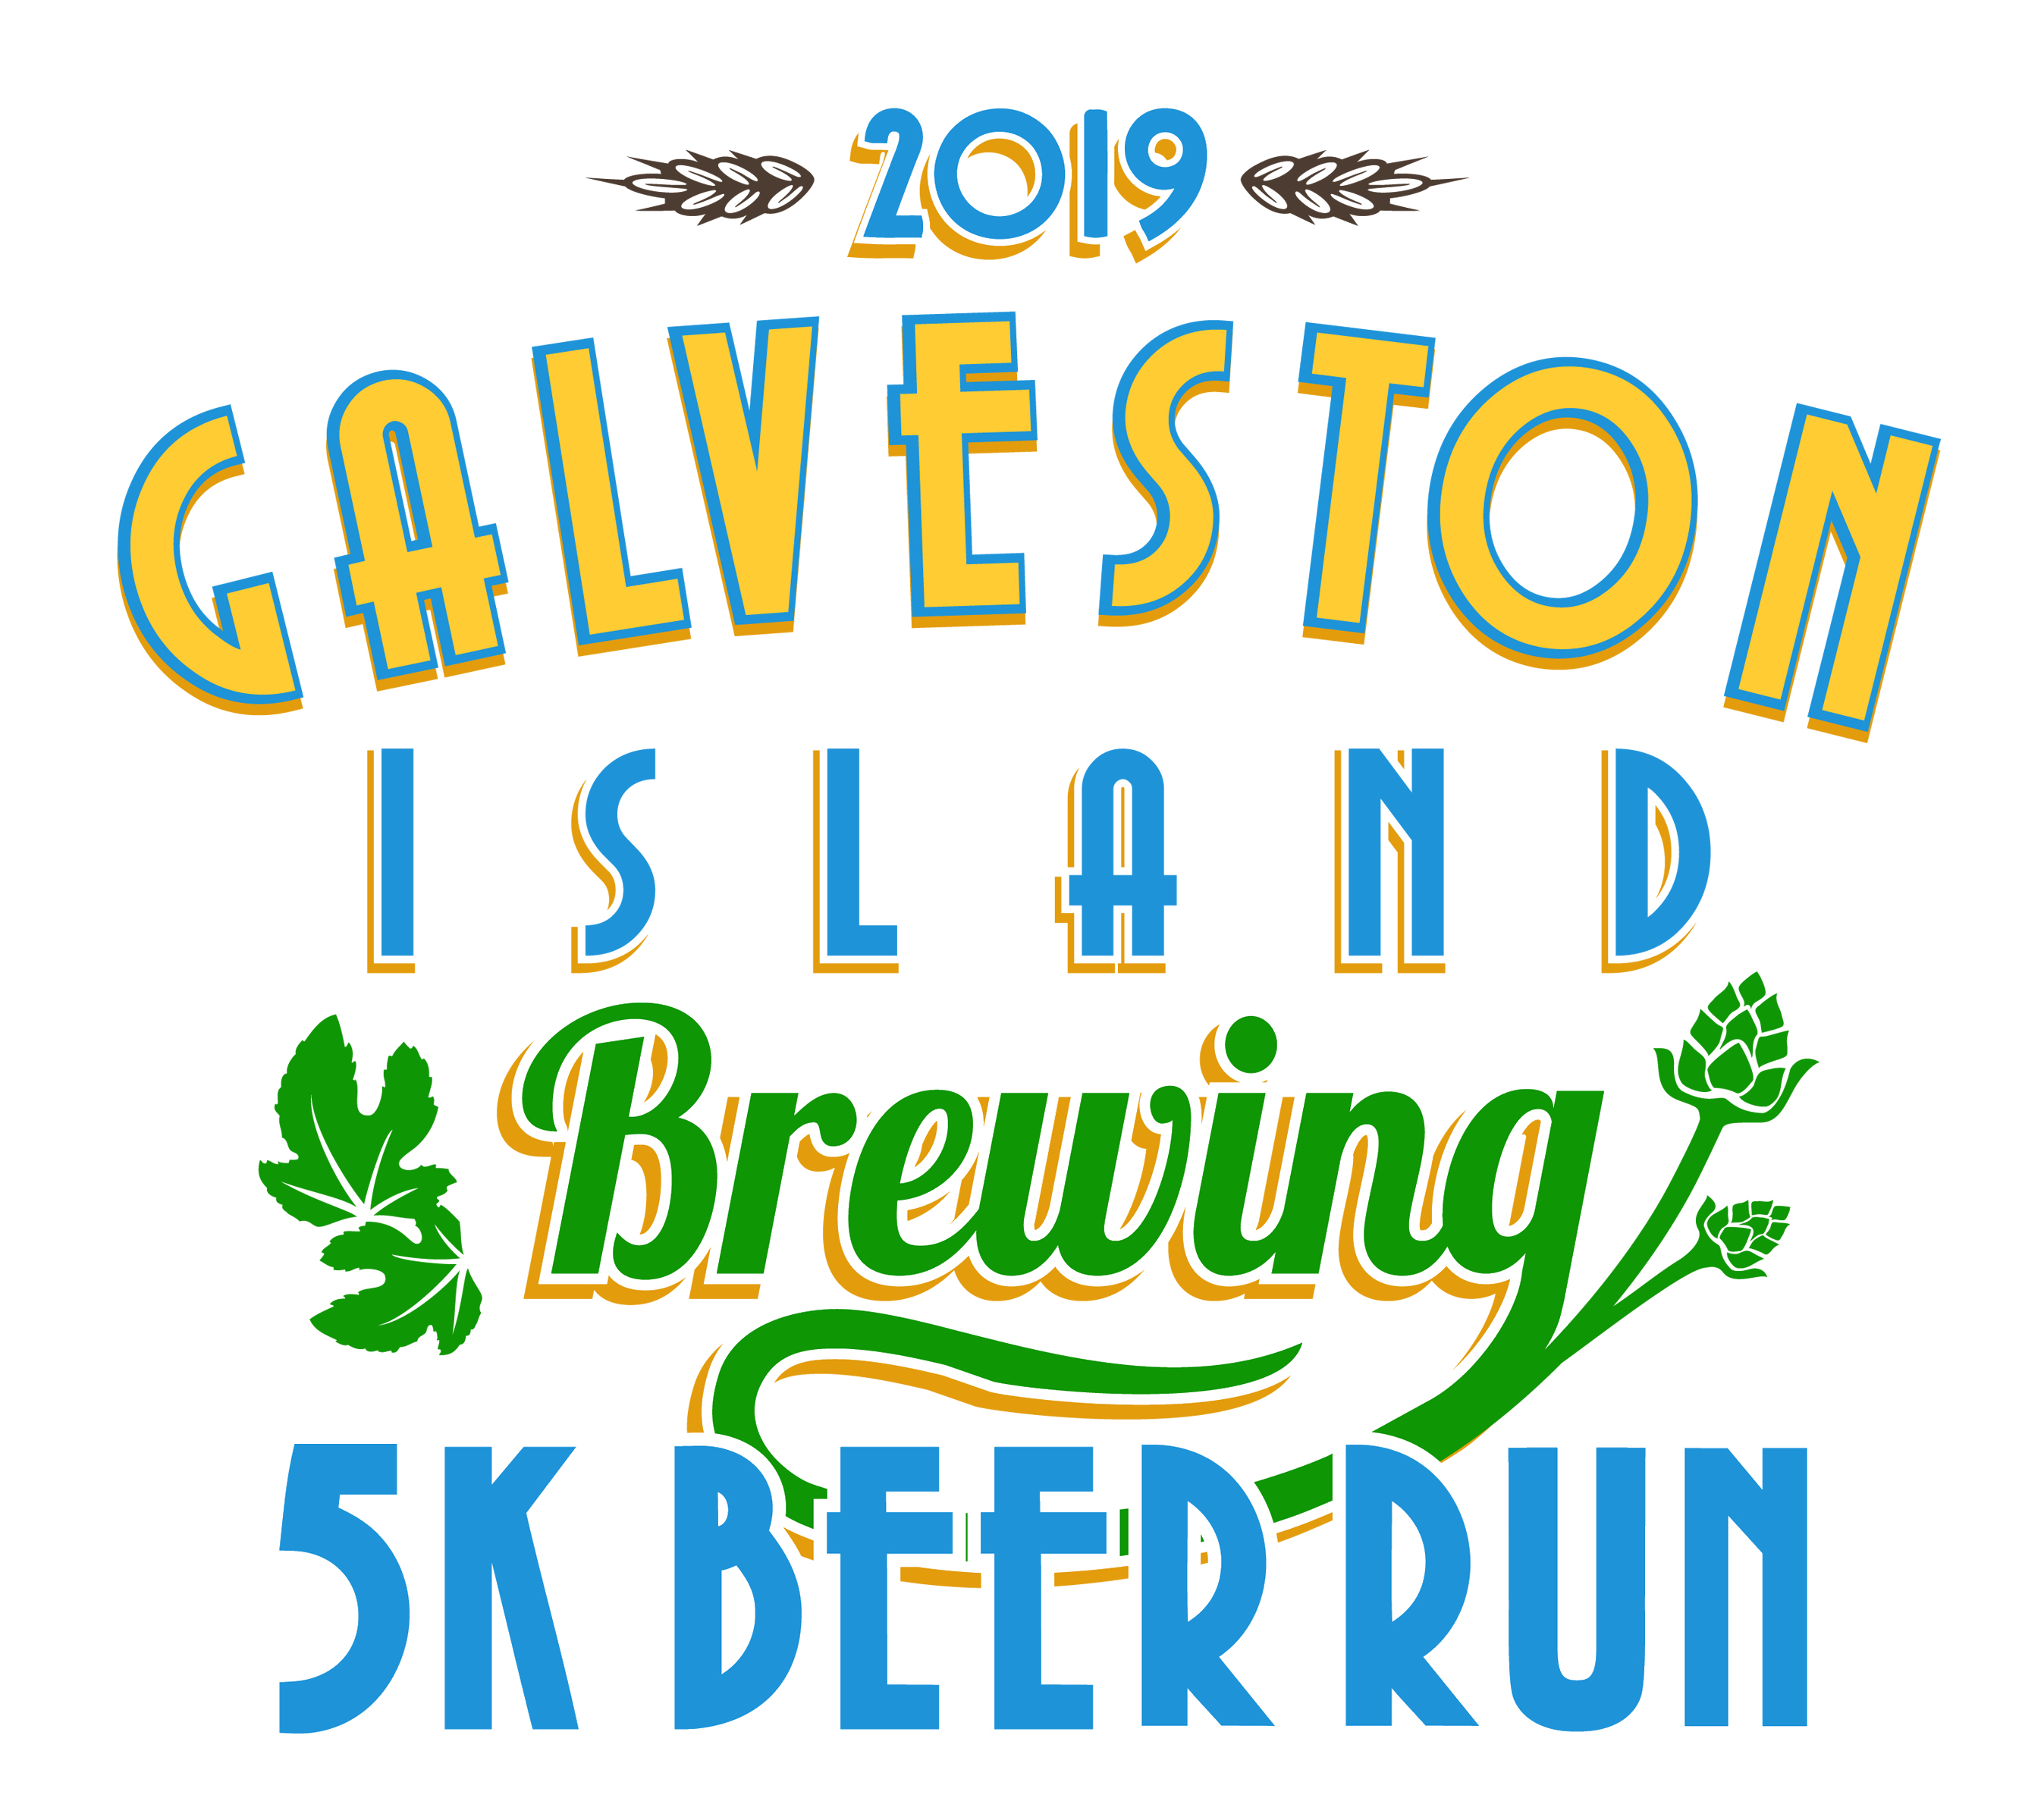 Galveston Island Brewing Co 5K Beer Run (Walker Friendly!) | Run In